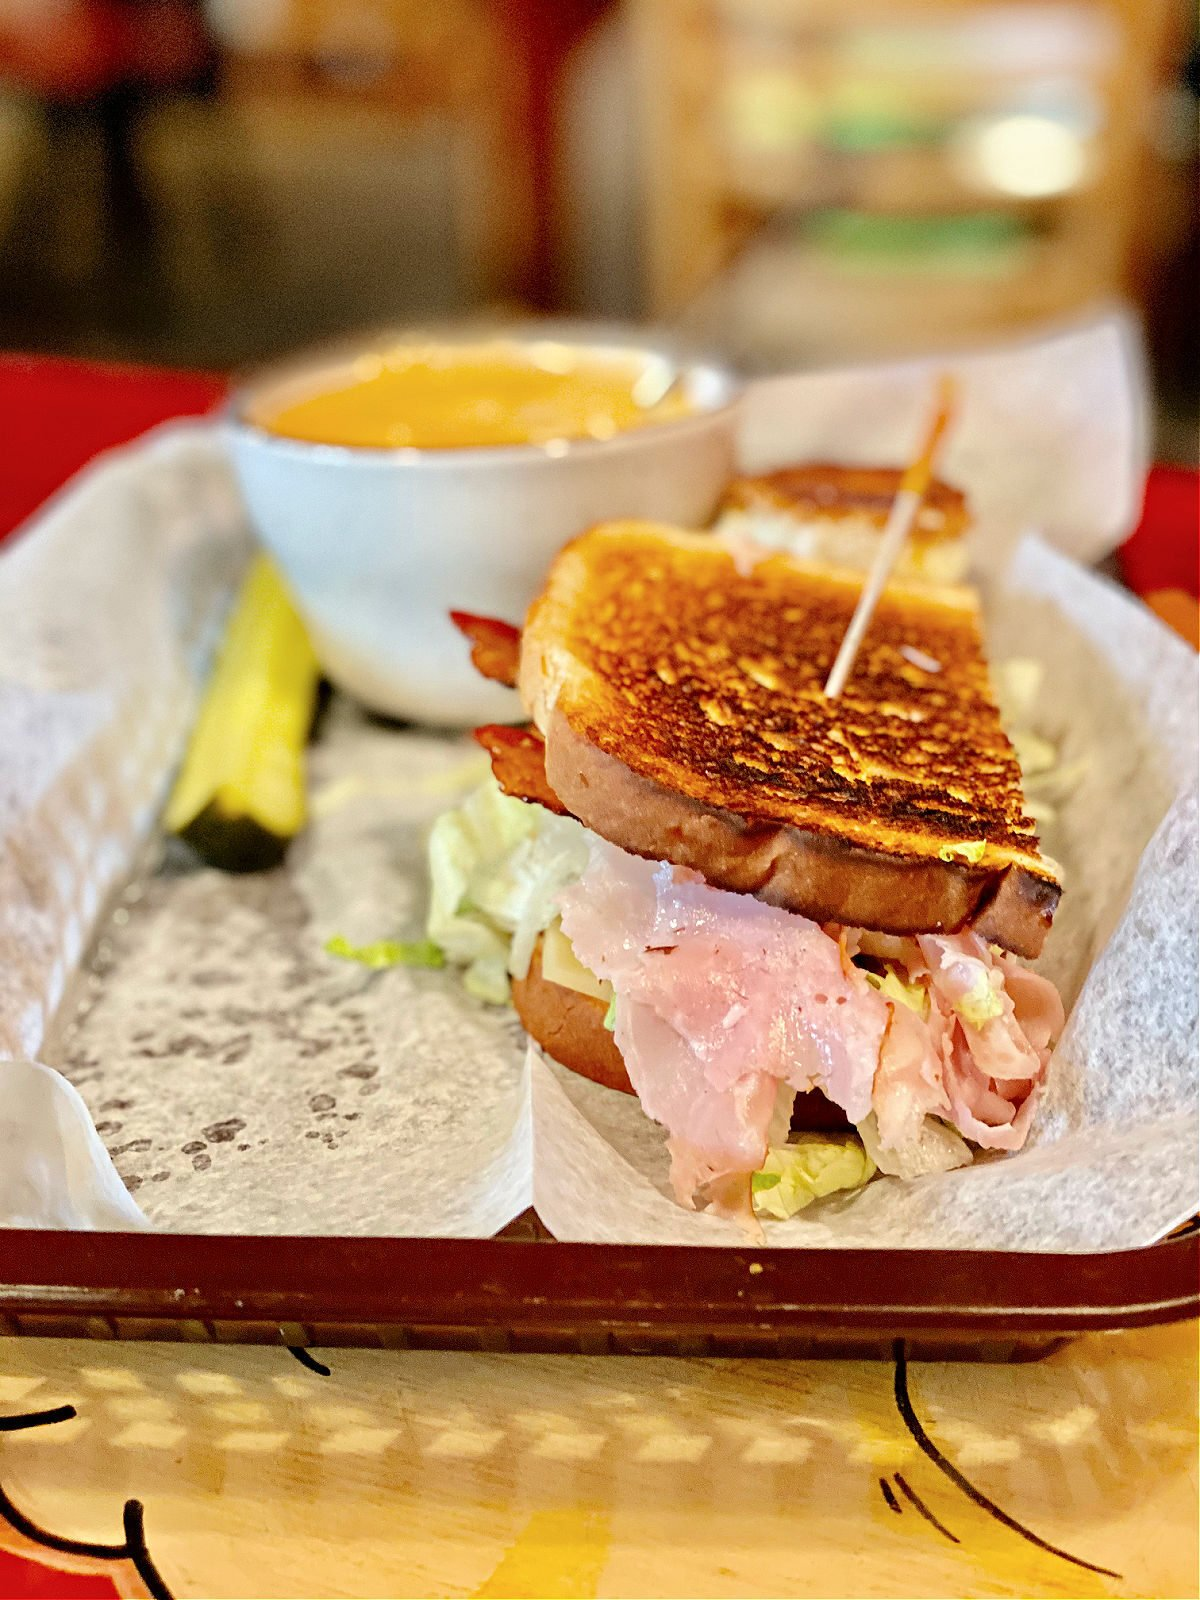 Club sandwich on a tray with a cup of beer cheese soup.